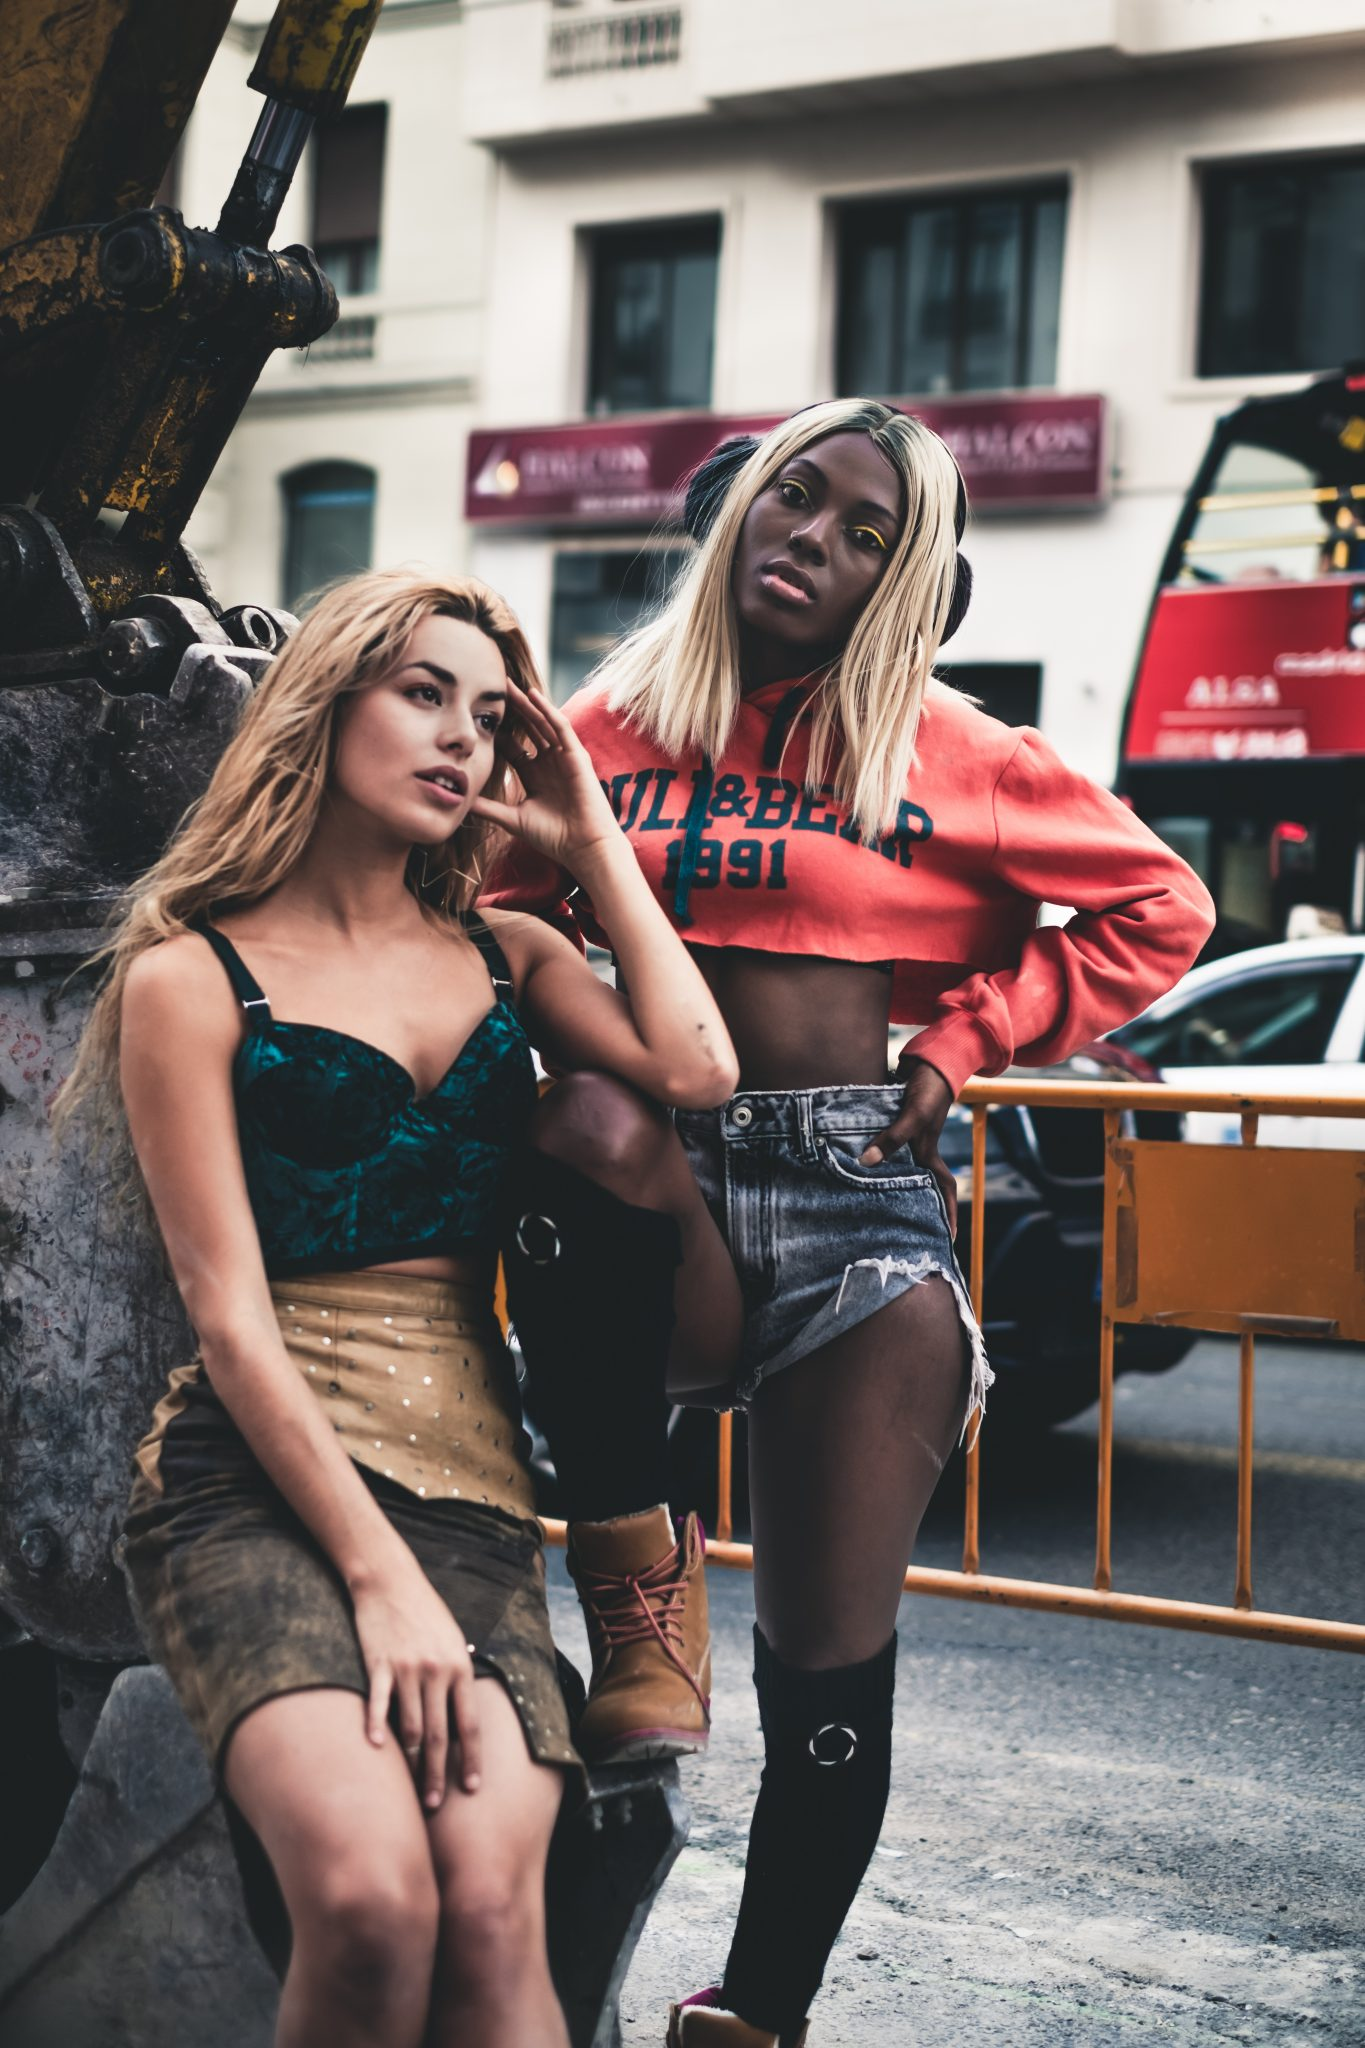 Two sexy female models posing on a truck photo by Jo Kassis